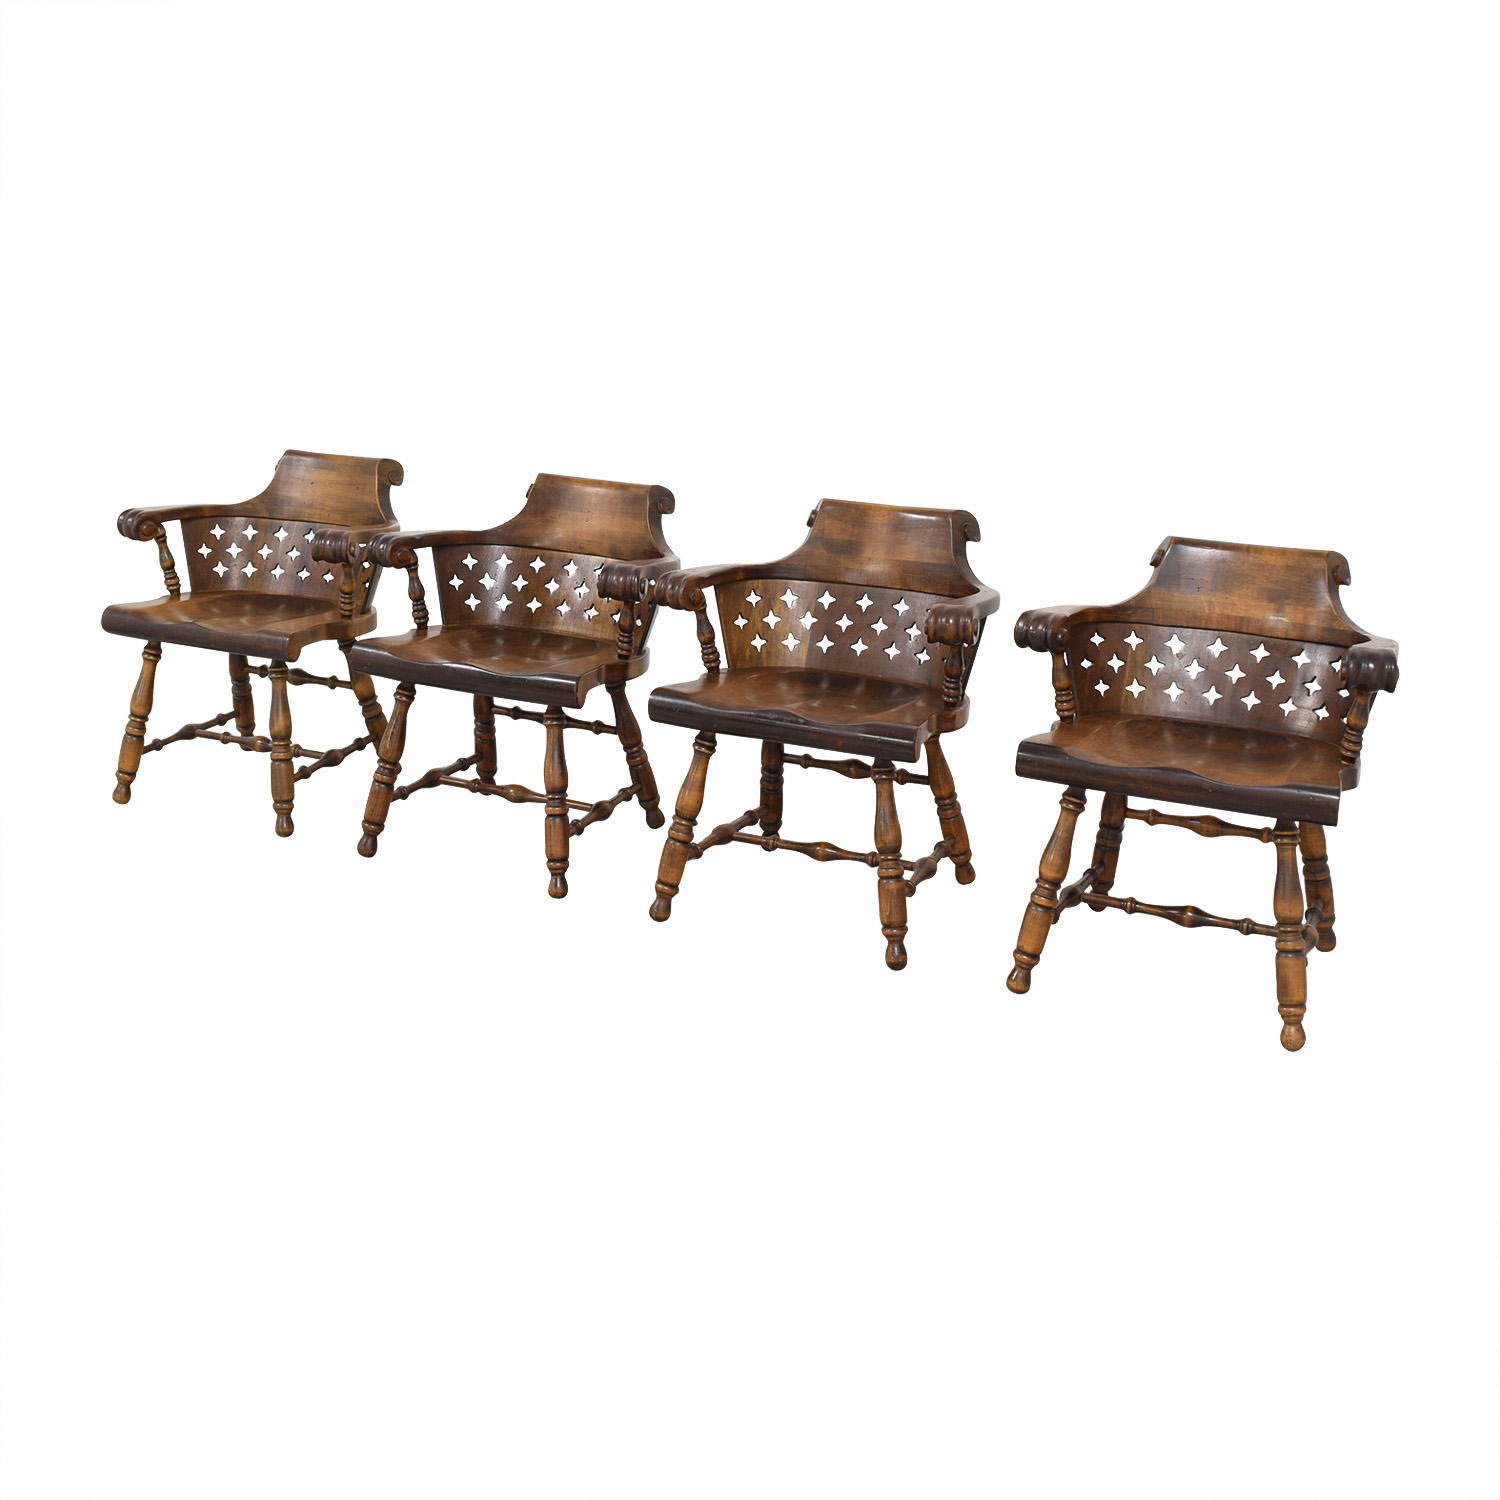 Ethan Allen Ethan Allen Patterned Cutout Dining Chairs ct